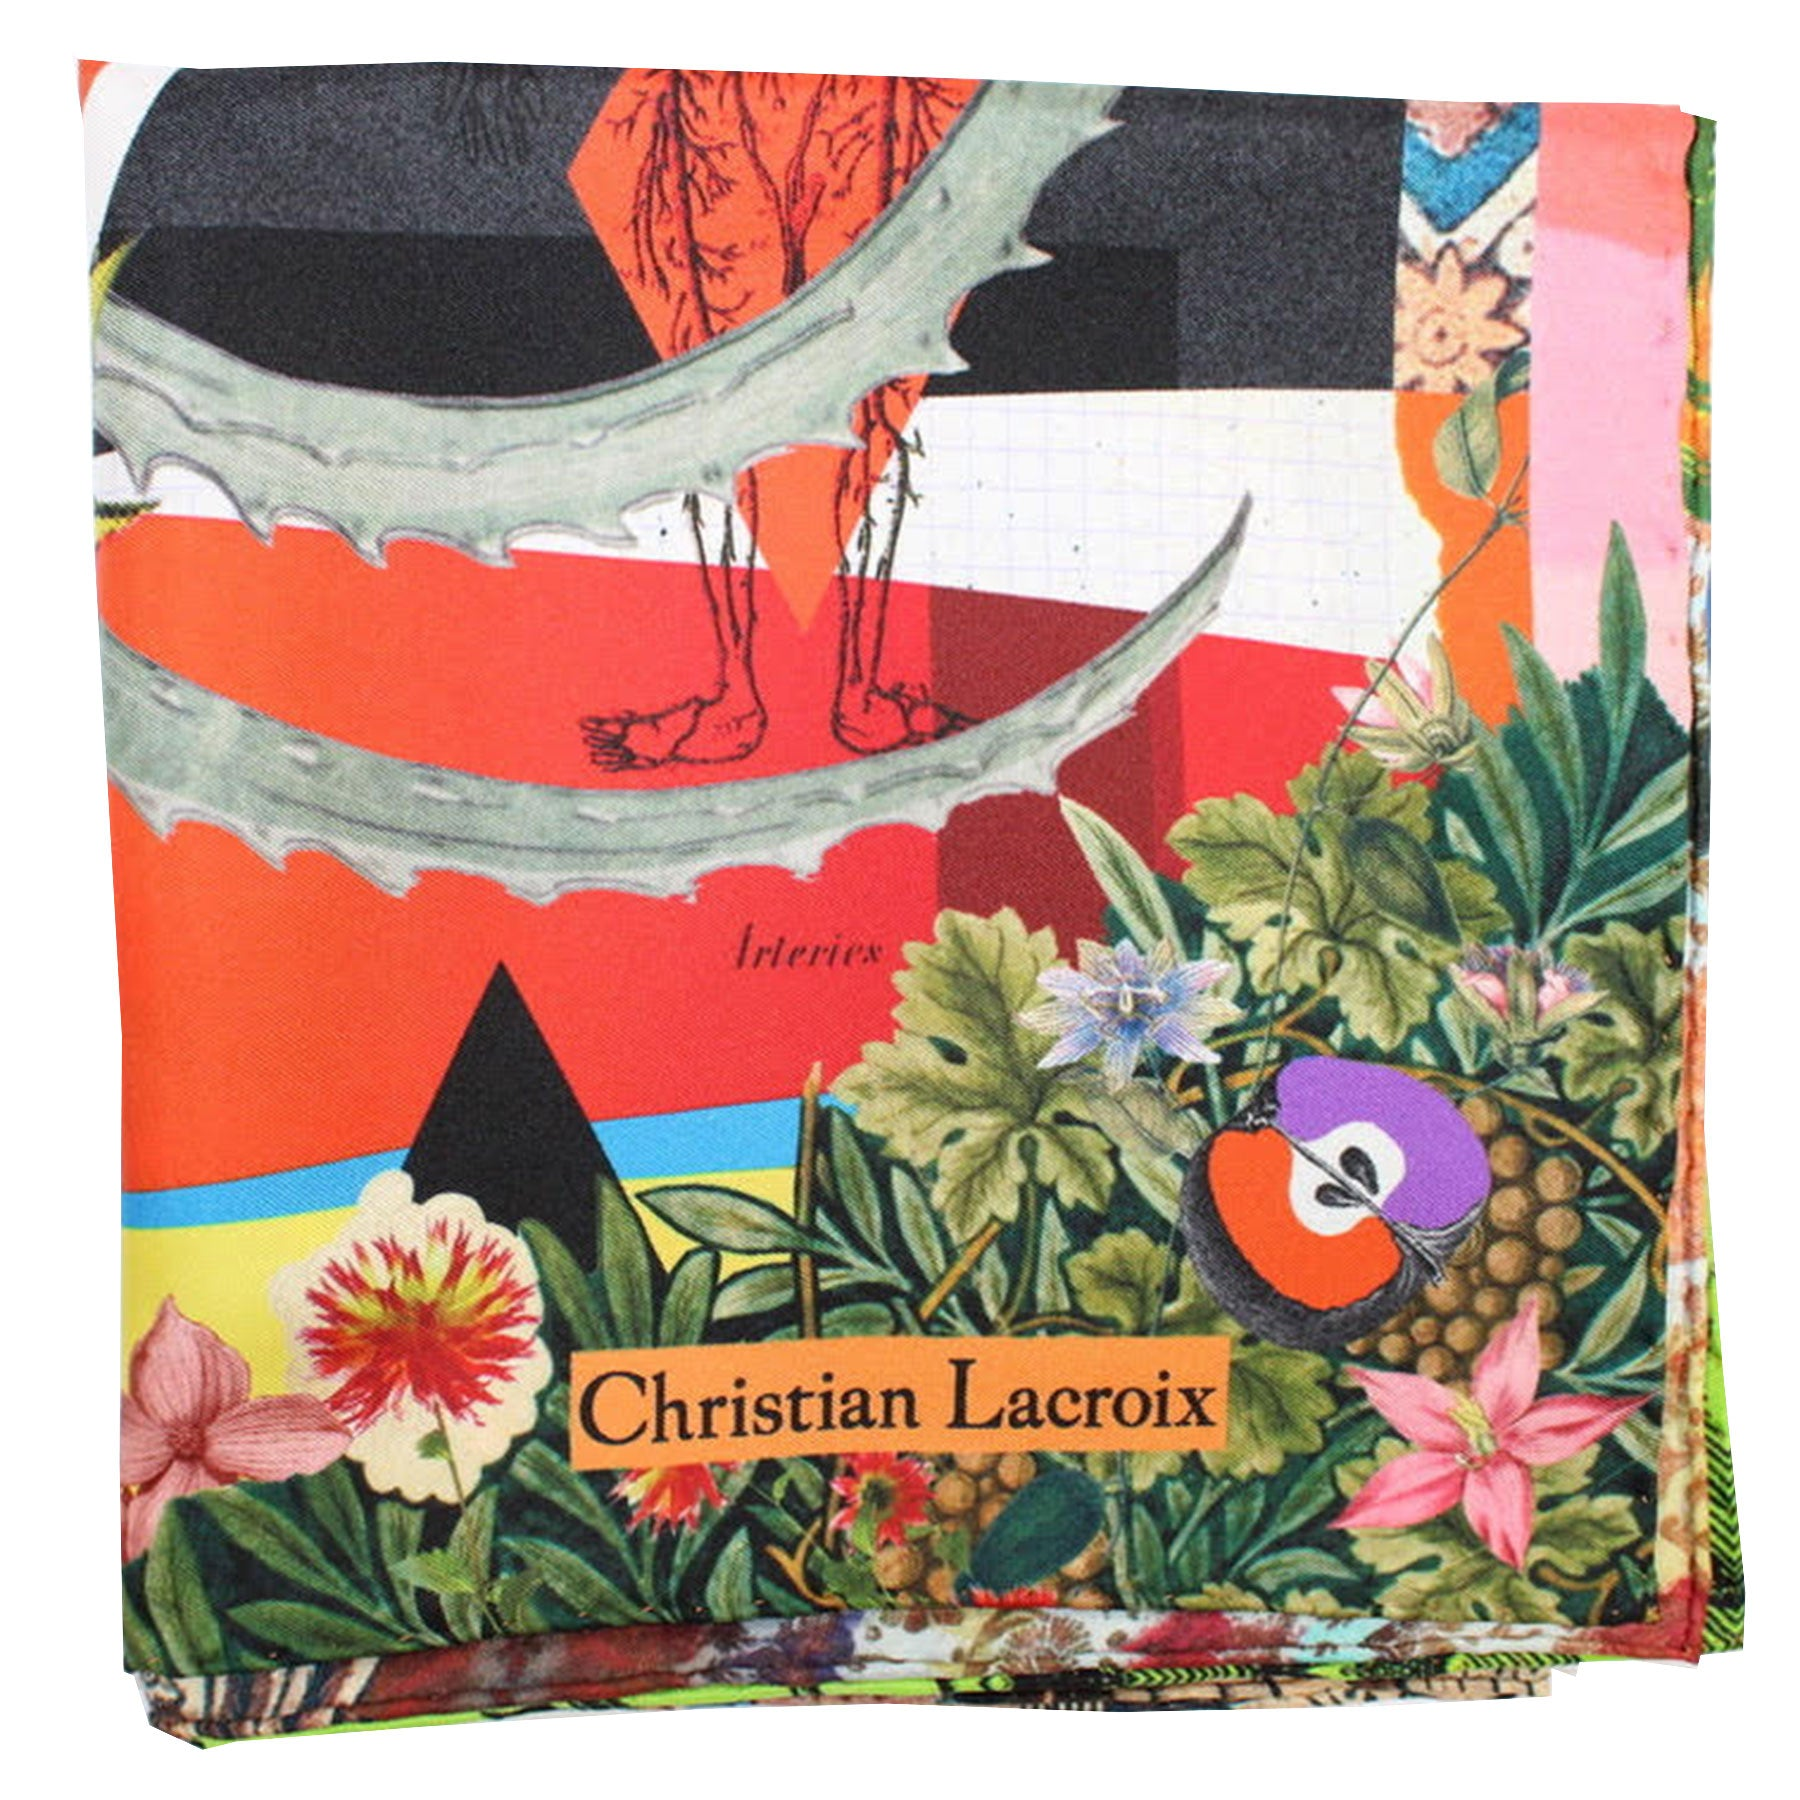 "Christian Lacroix Scarf Red Pink Green Design - Large Twill Silk 36"" Square Scarf"